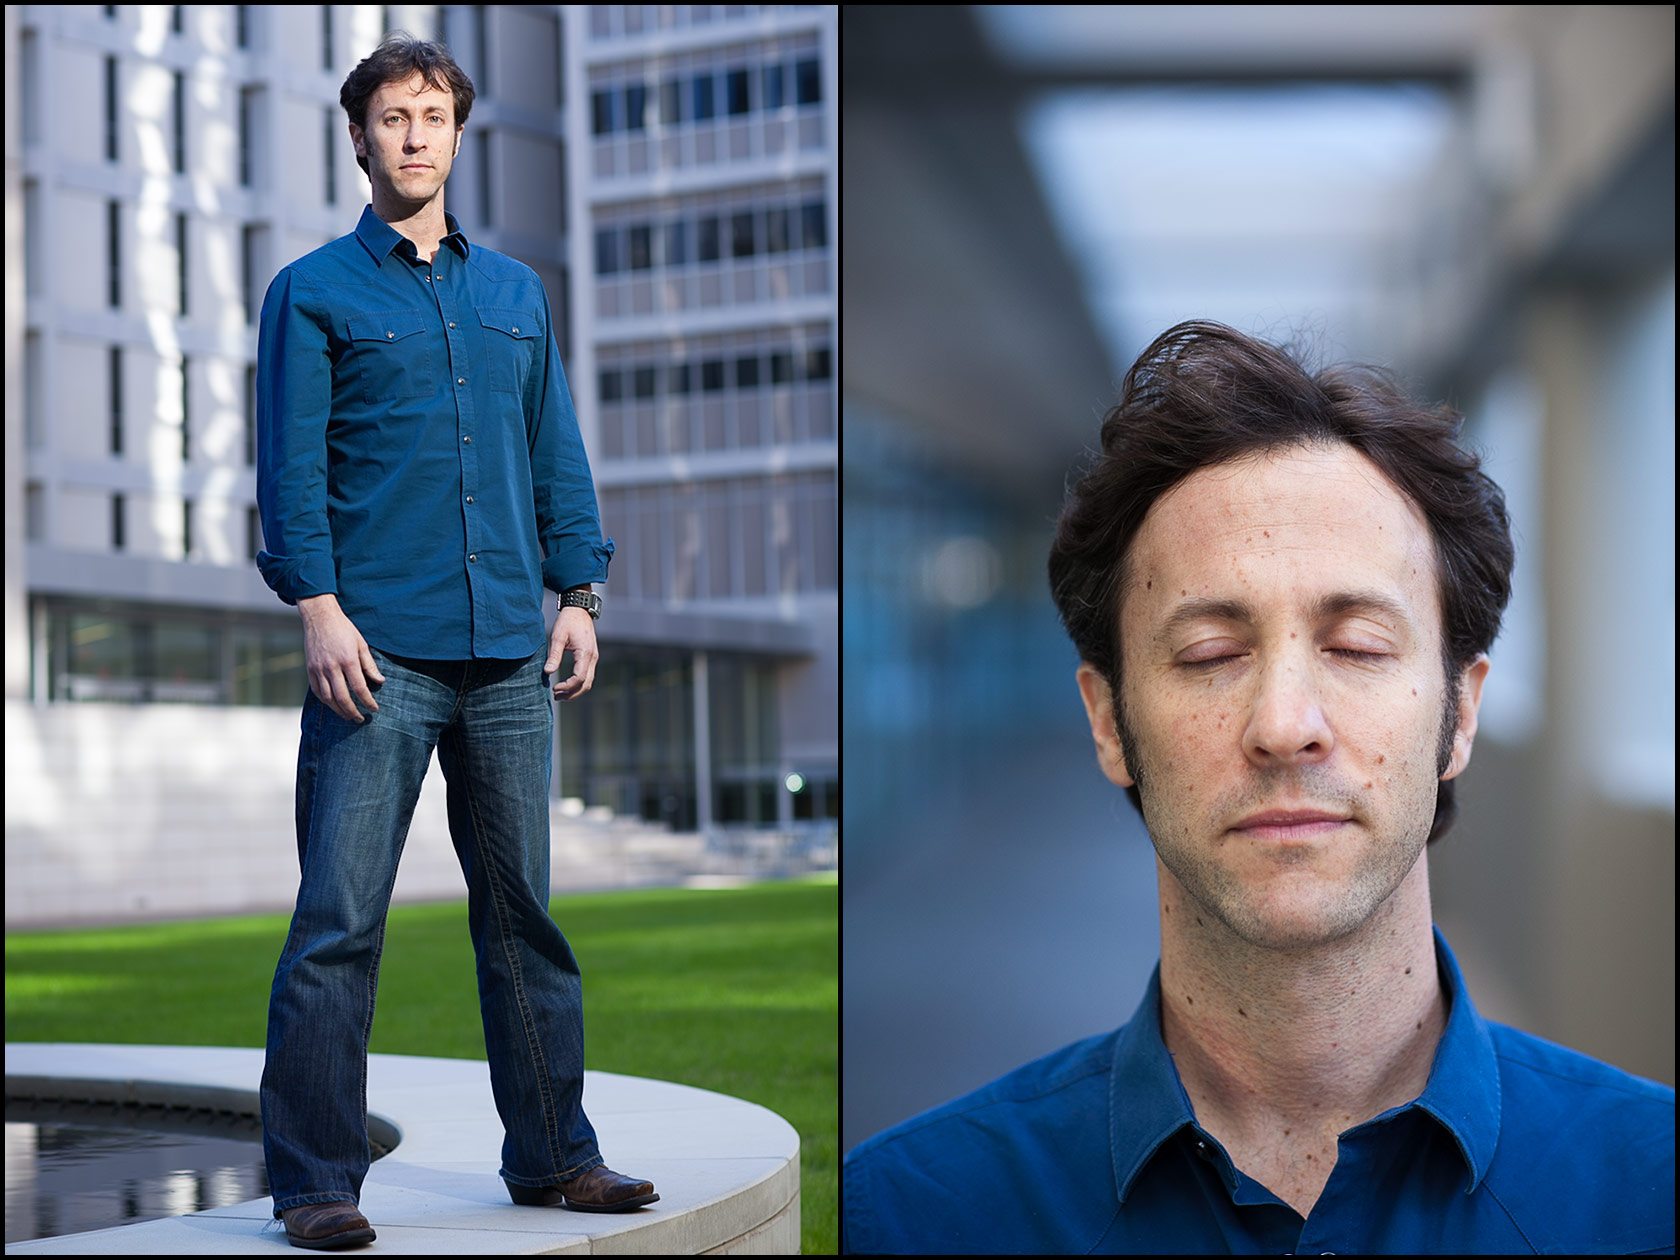 Portraits of Dr. David Eagleman, neuroscientist, in a courtyard at the Texas Medical Center in Houston.